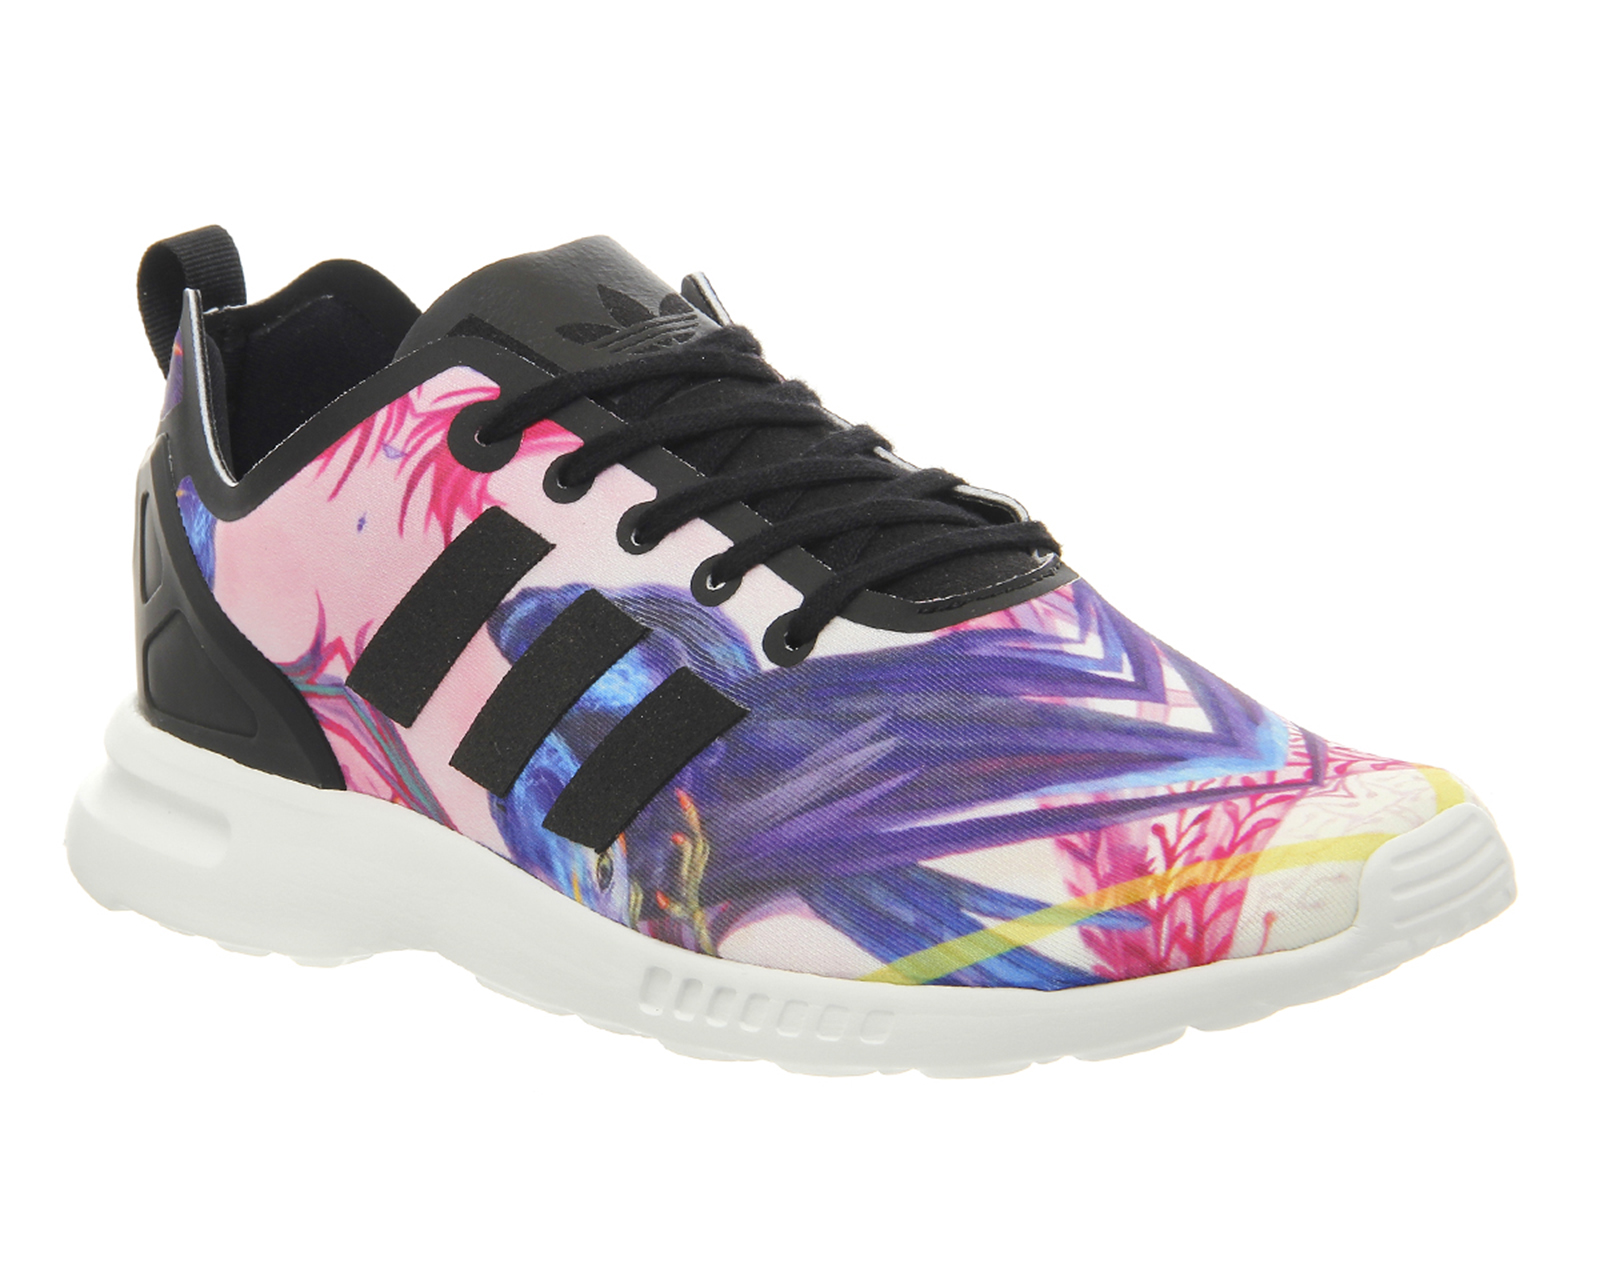 Zx Flux Floral | All Red Adidas Zx Flux | Adidas Reflective Shoes